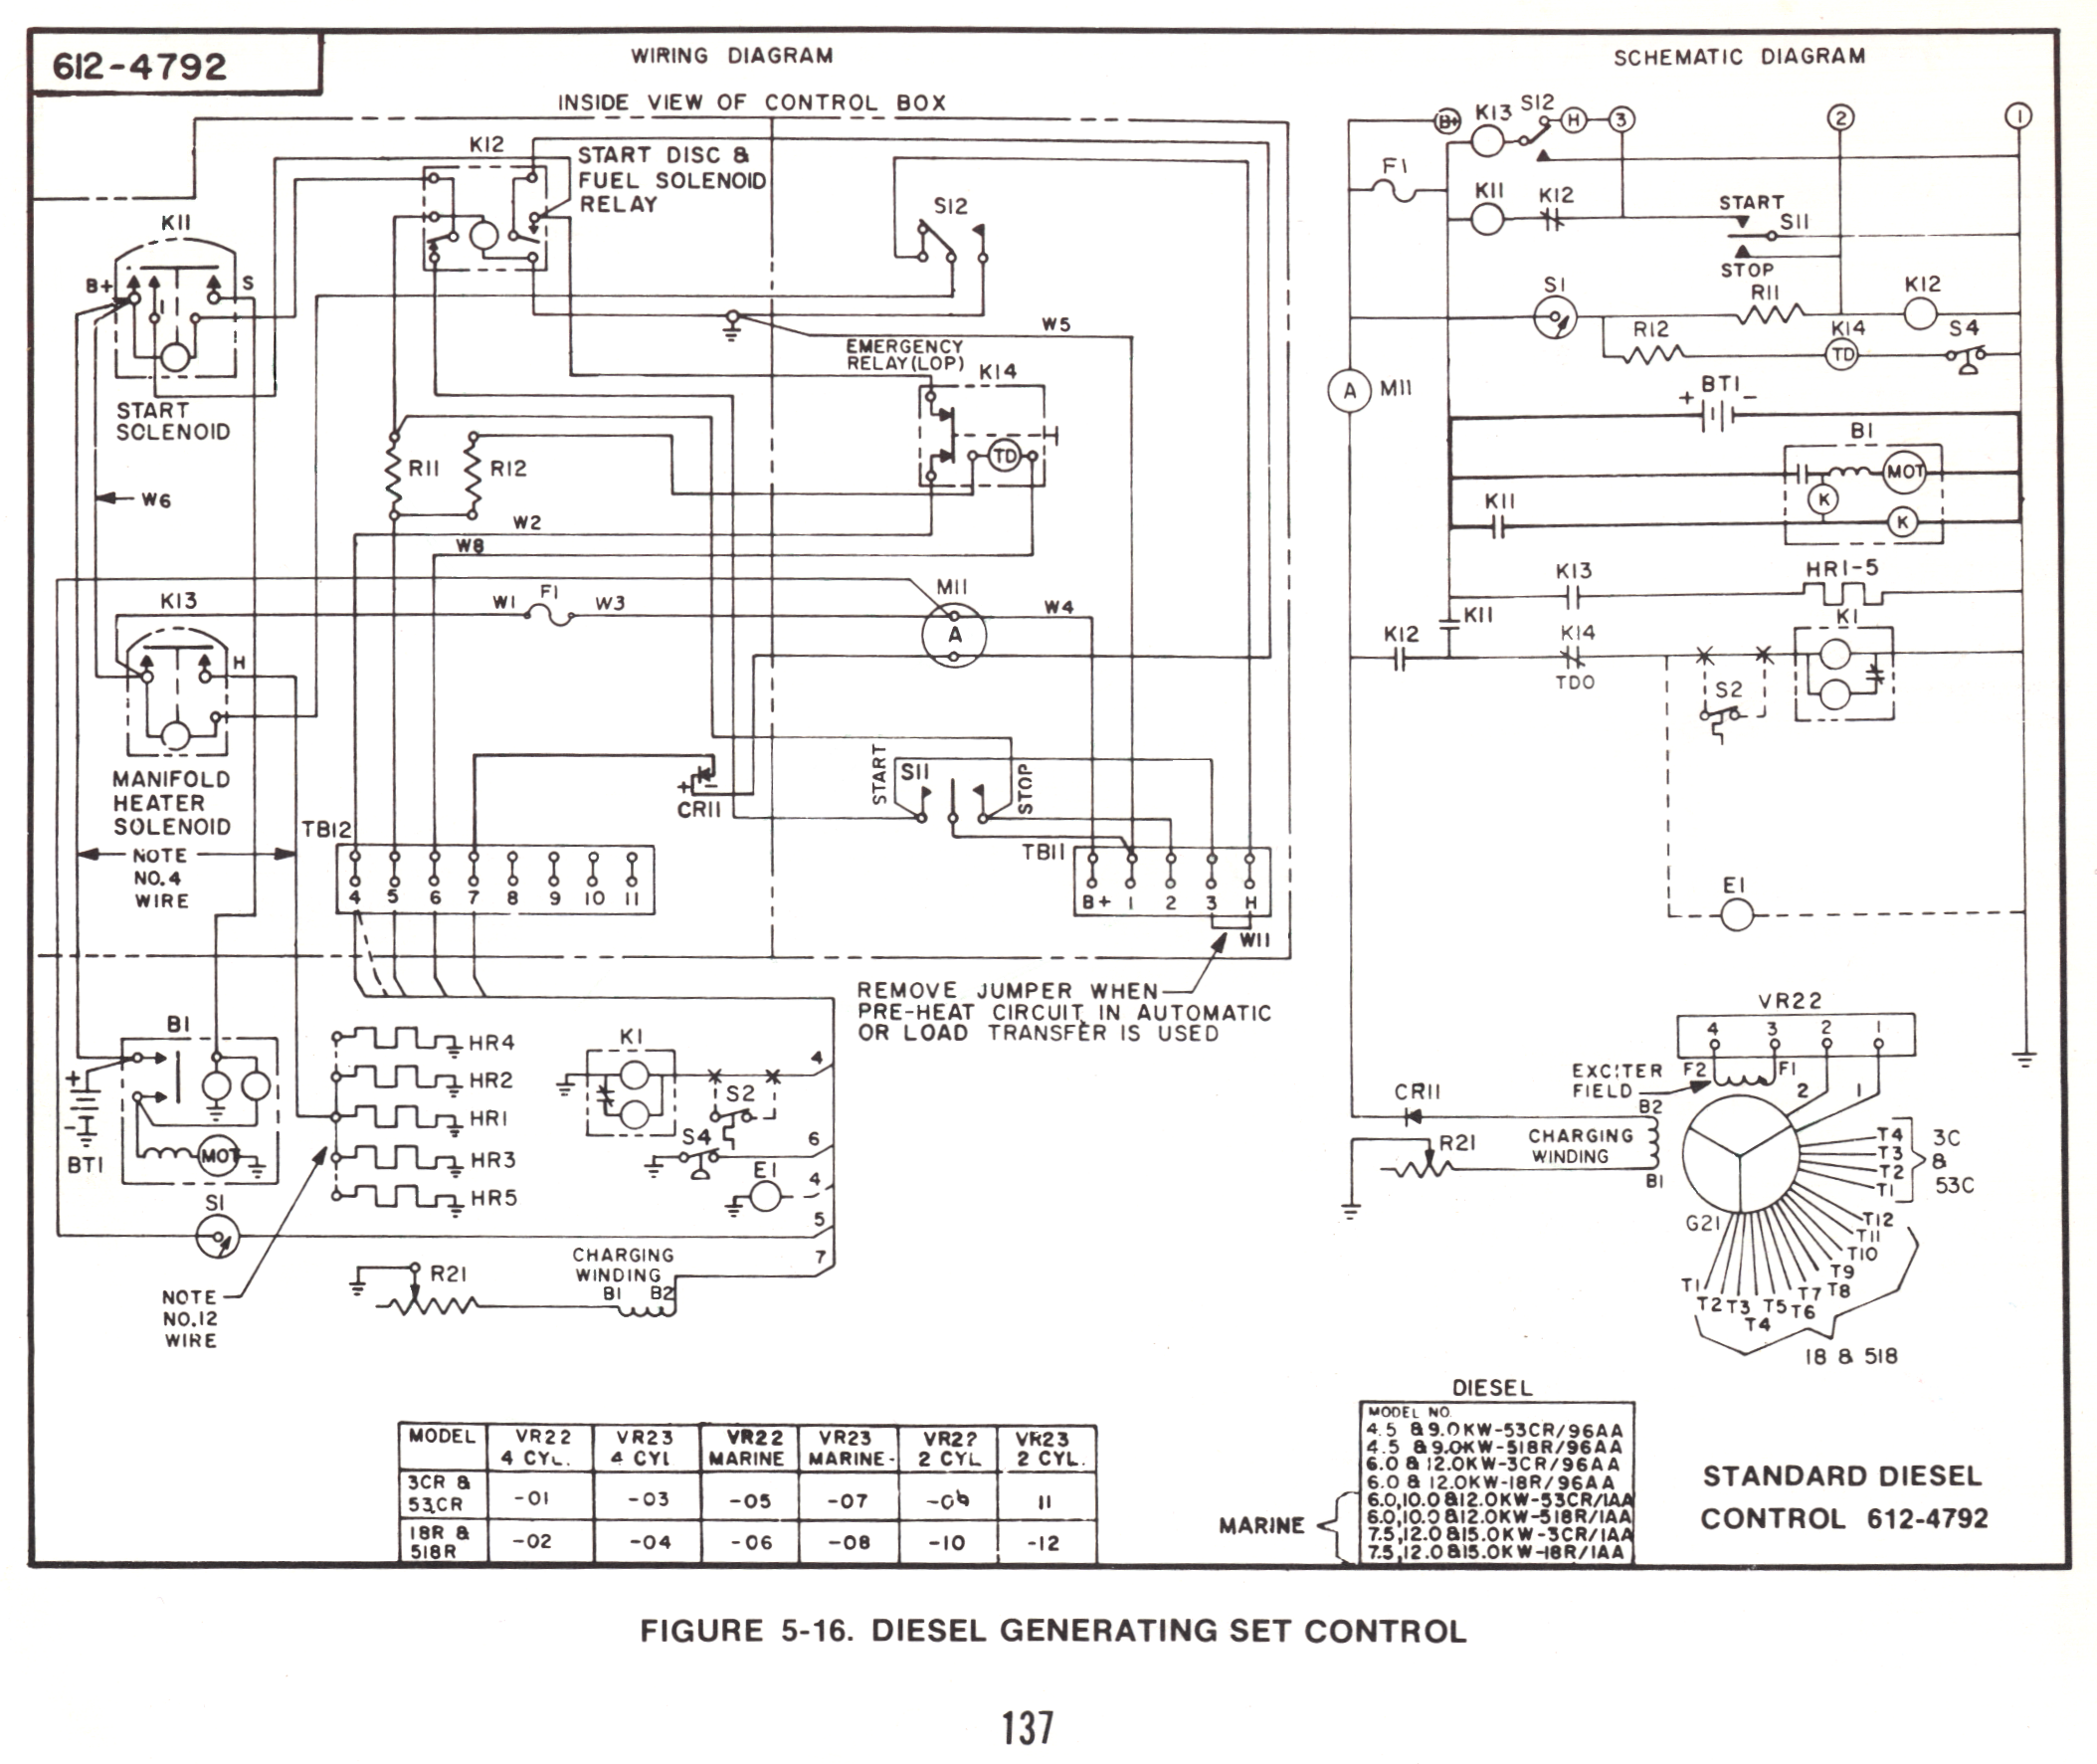 Onan_Diesel_Controls_612 4792_b onan wiring diagram onan wiring diagram 611 1127 \u2022 wiring diagrams Champion Generator Owner's Manual at readyjetset.co